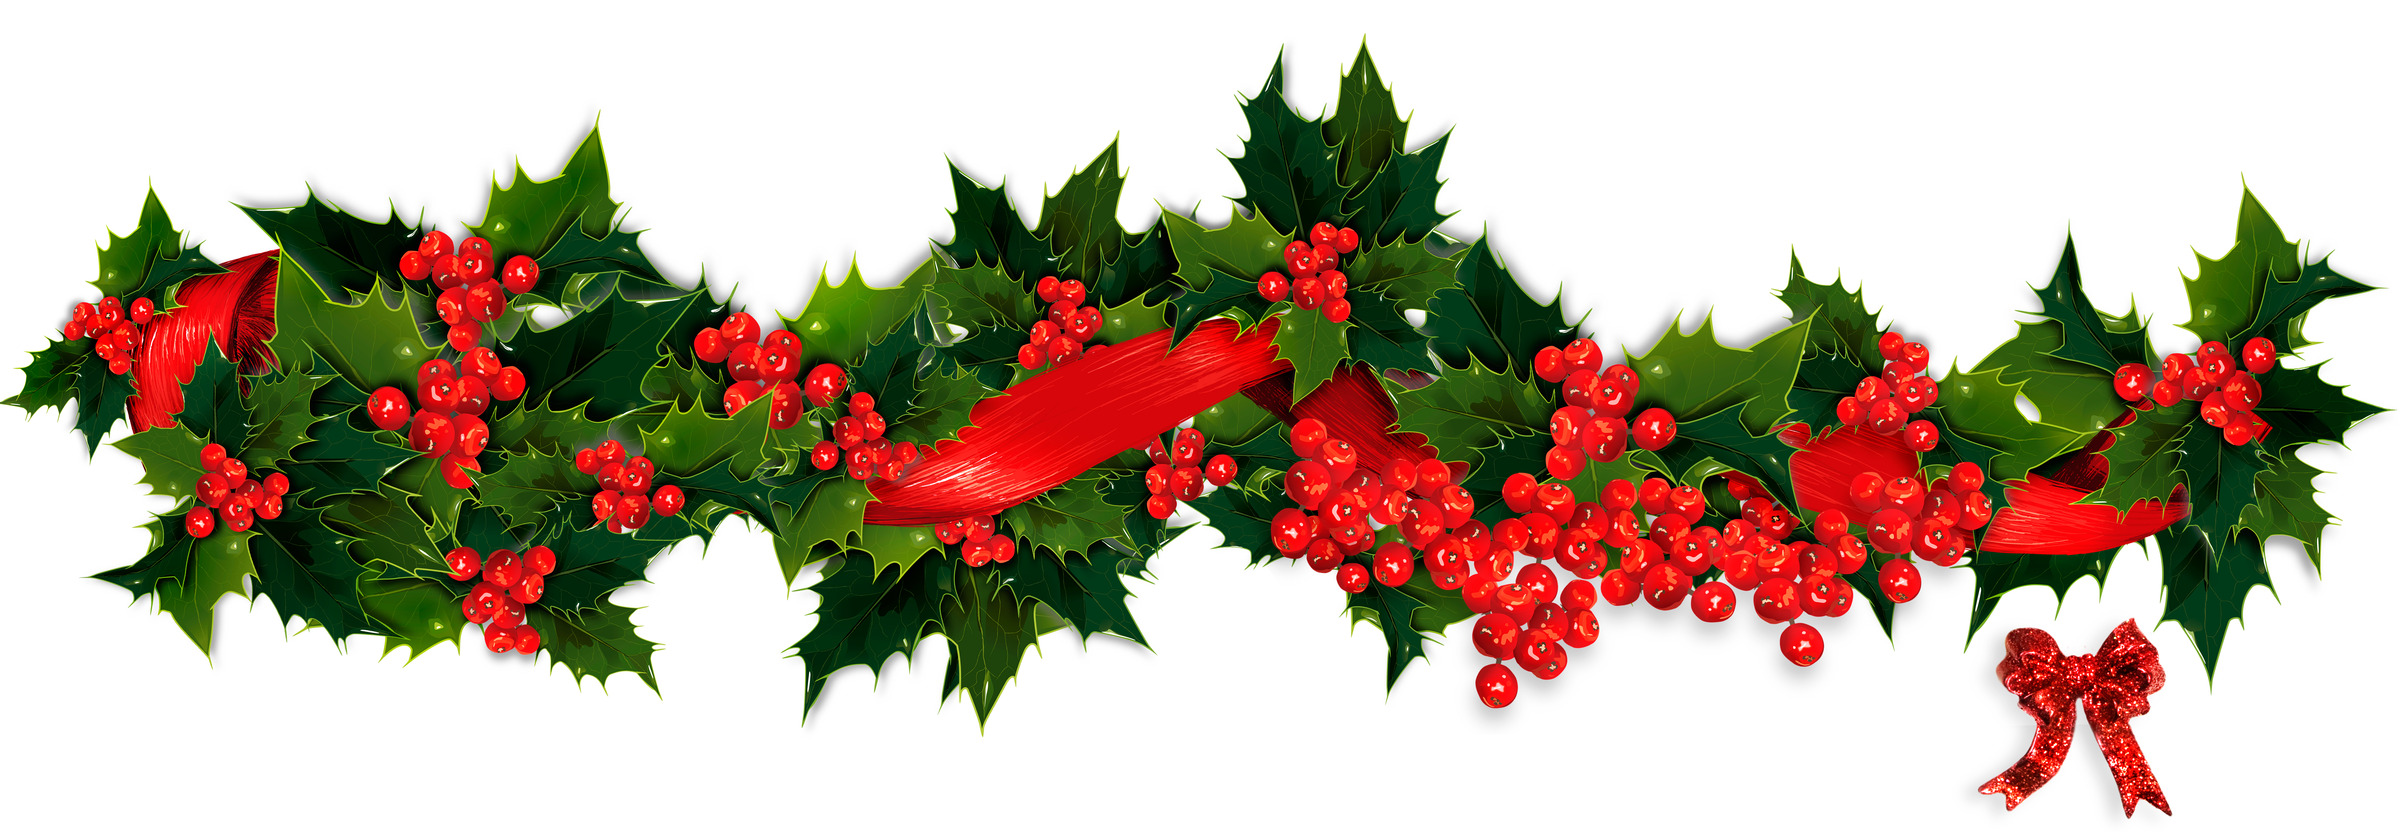 Xmas Stuff For > Christmas Garland Images - Cliparts.co